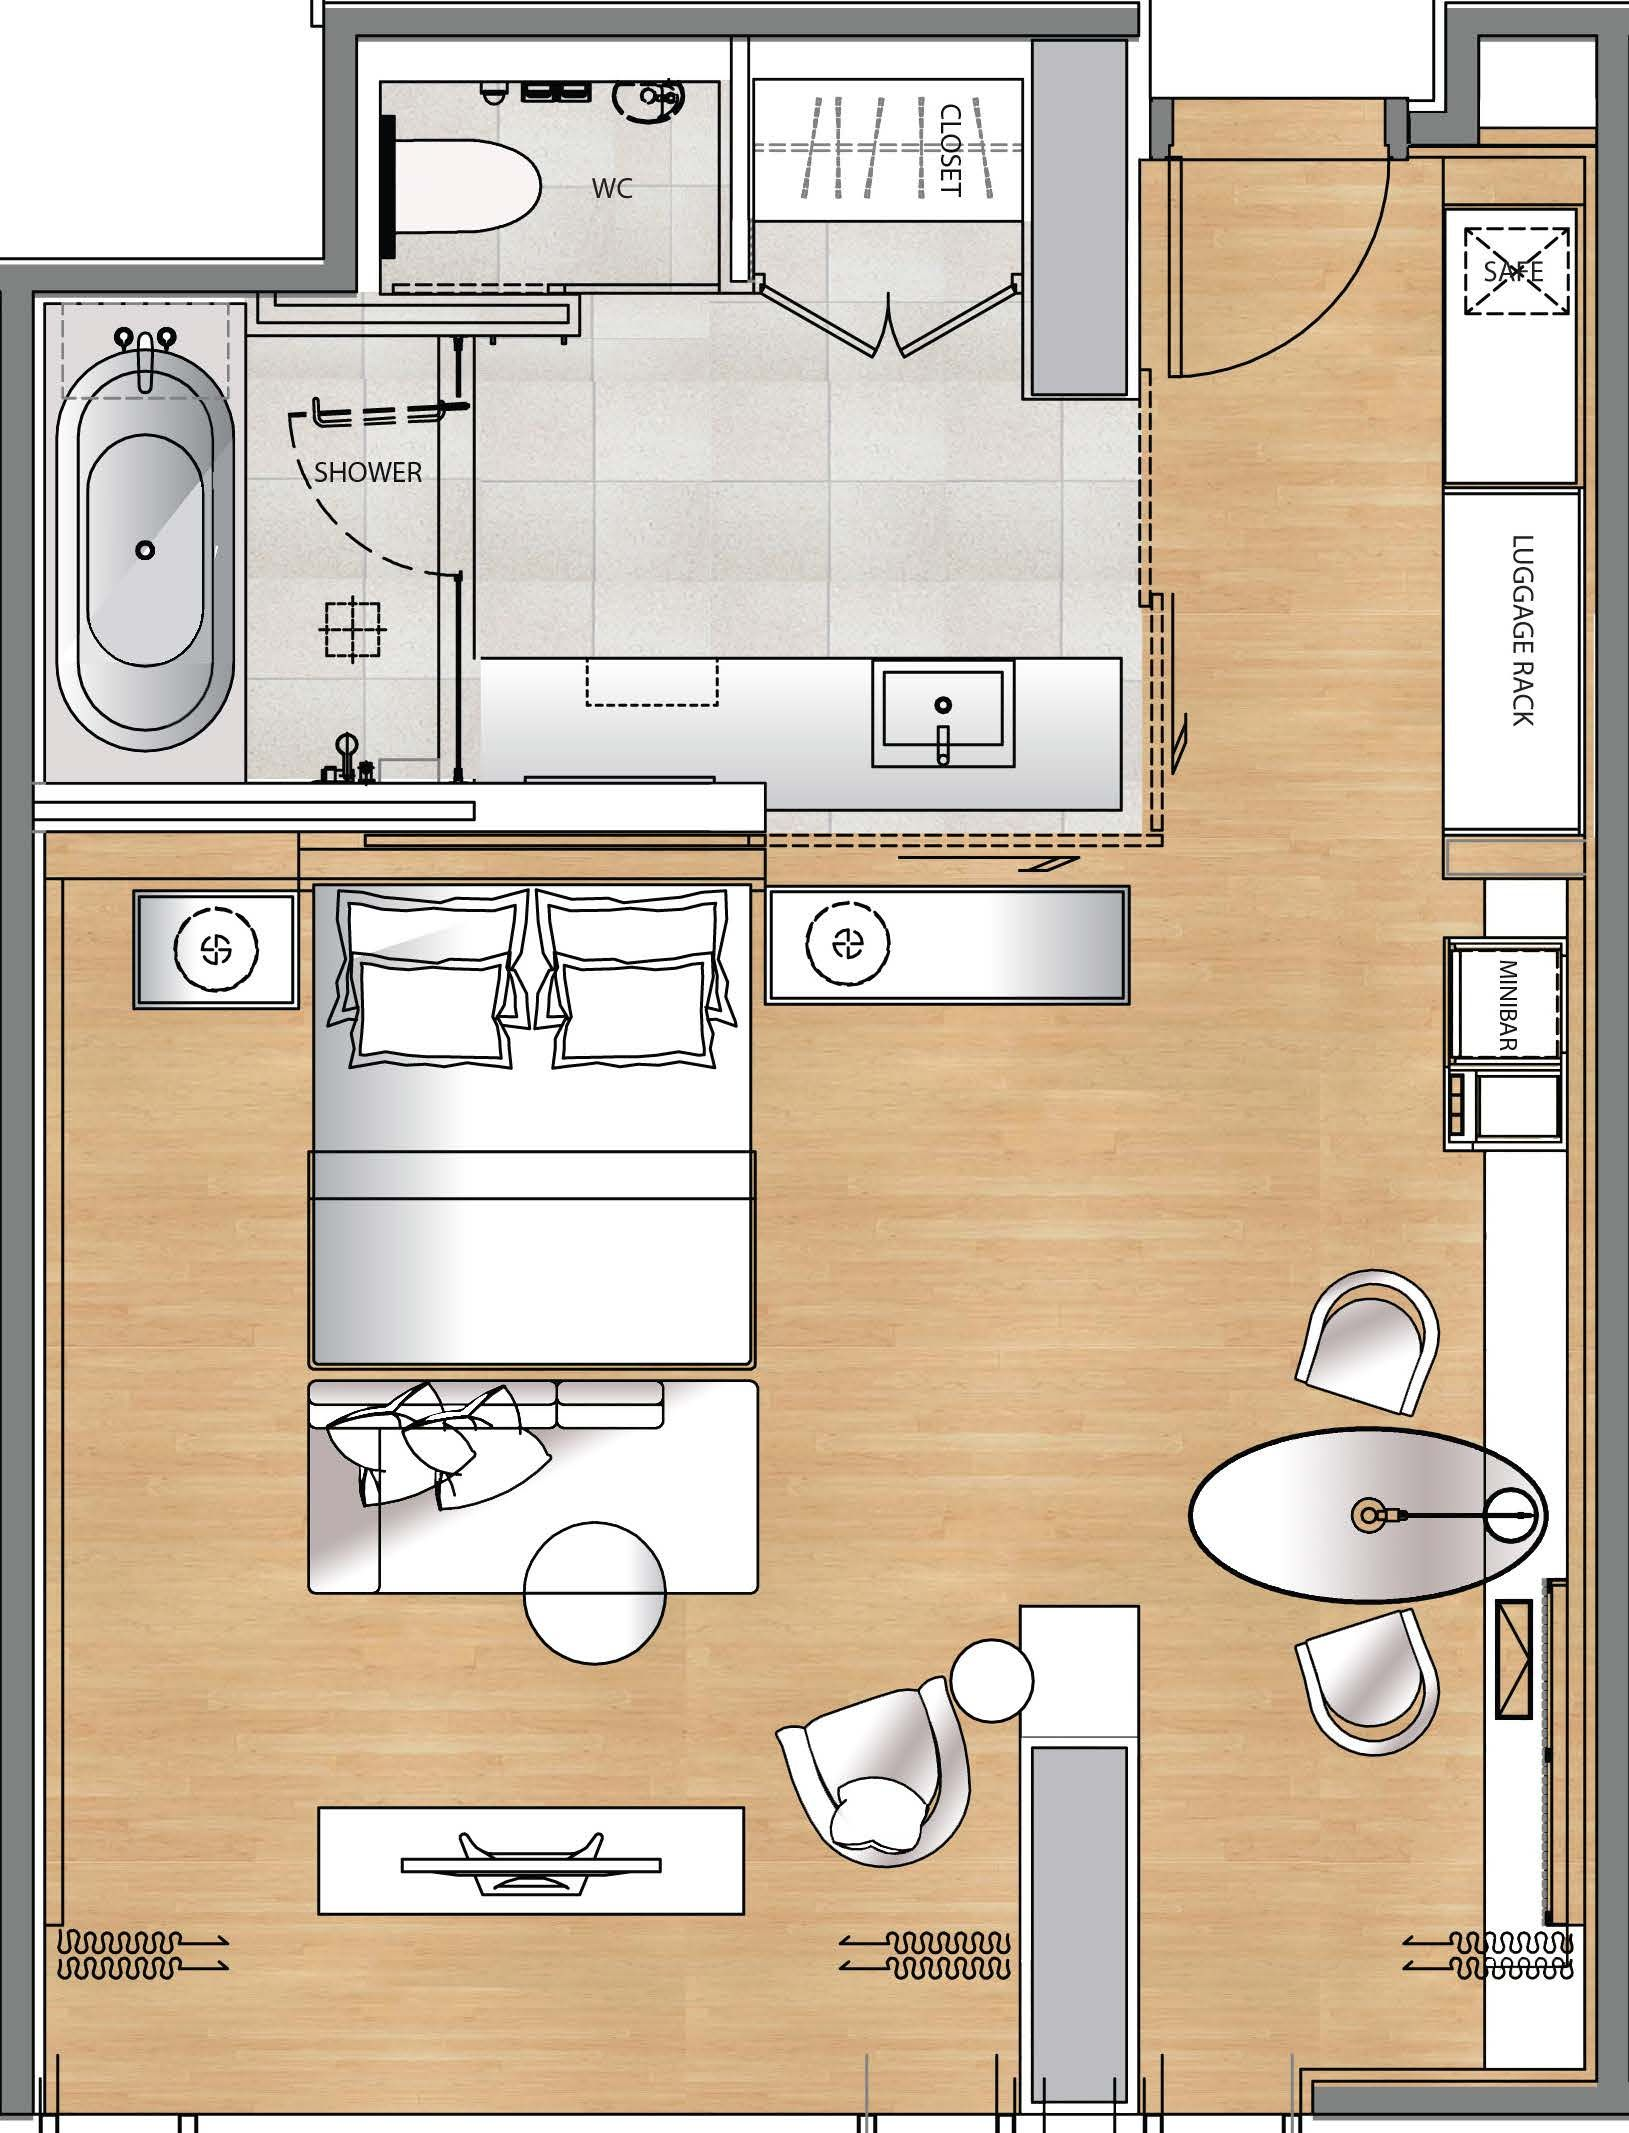 Hotel gym floor plan google search hotel rooms for Bedroom layout